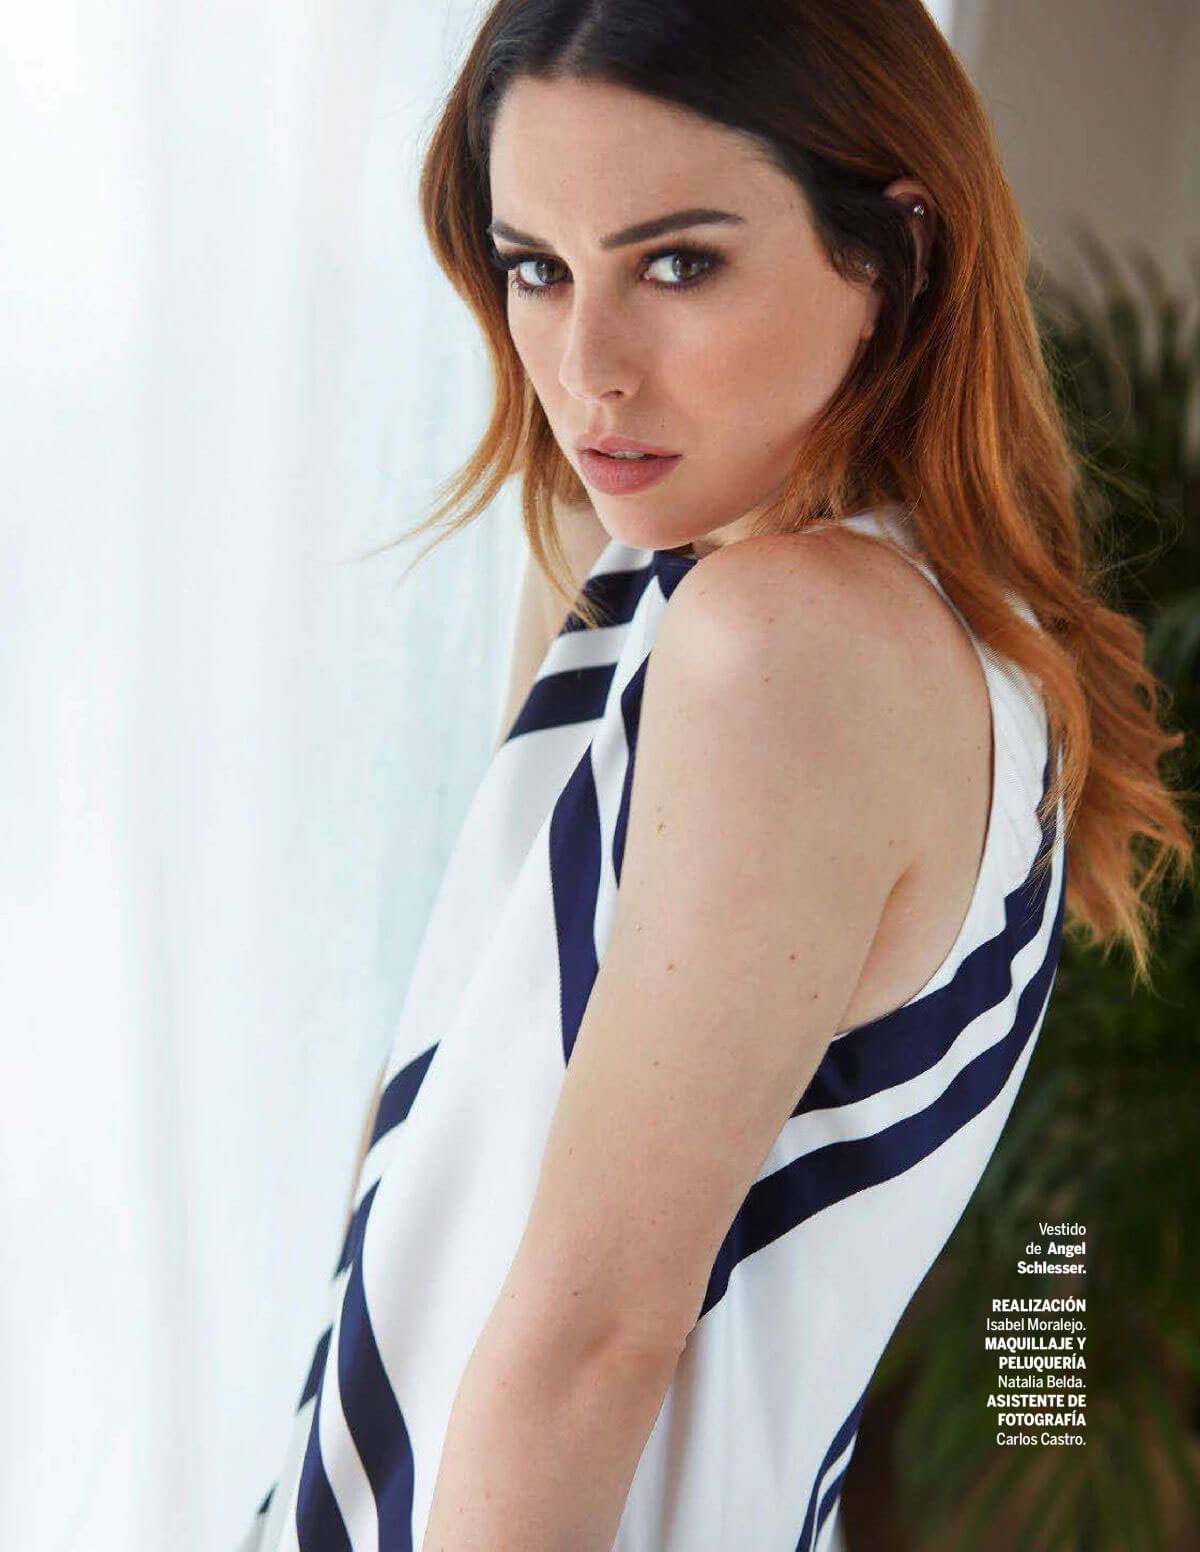 Blanca Suarez in Yo Dona, May 2018 Issue 1